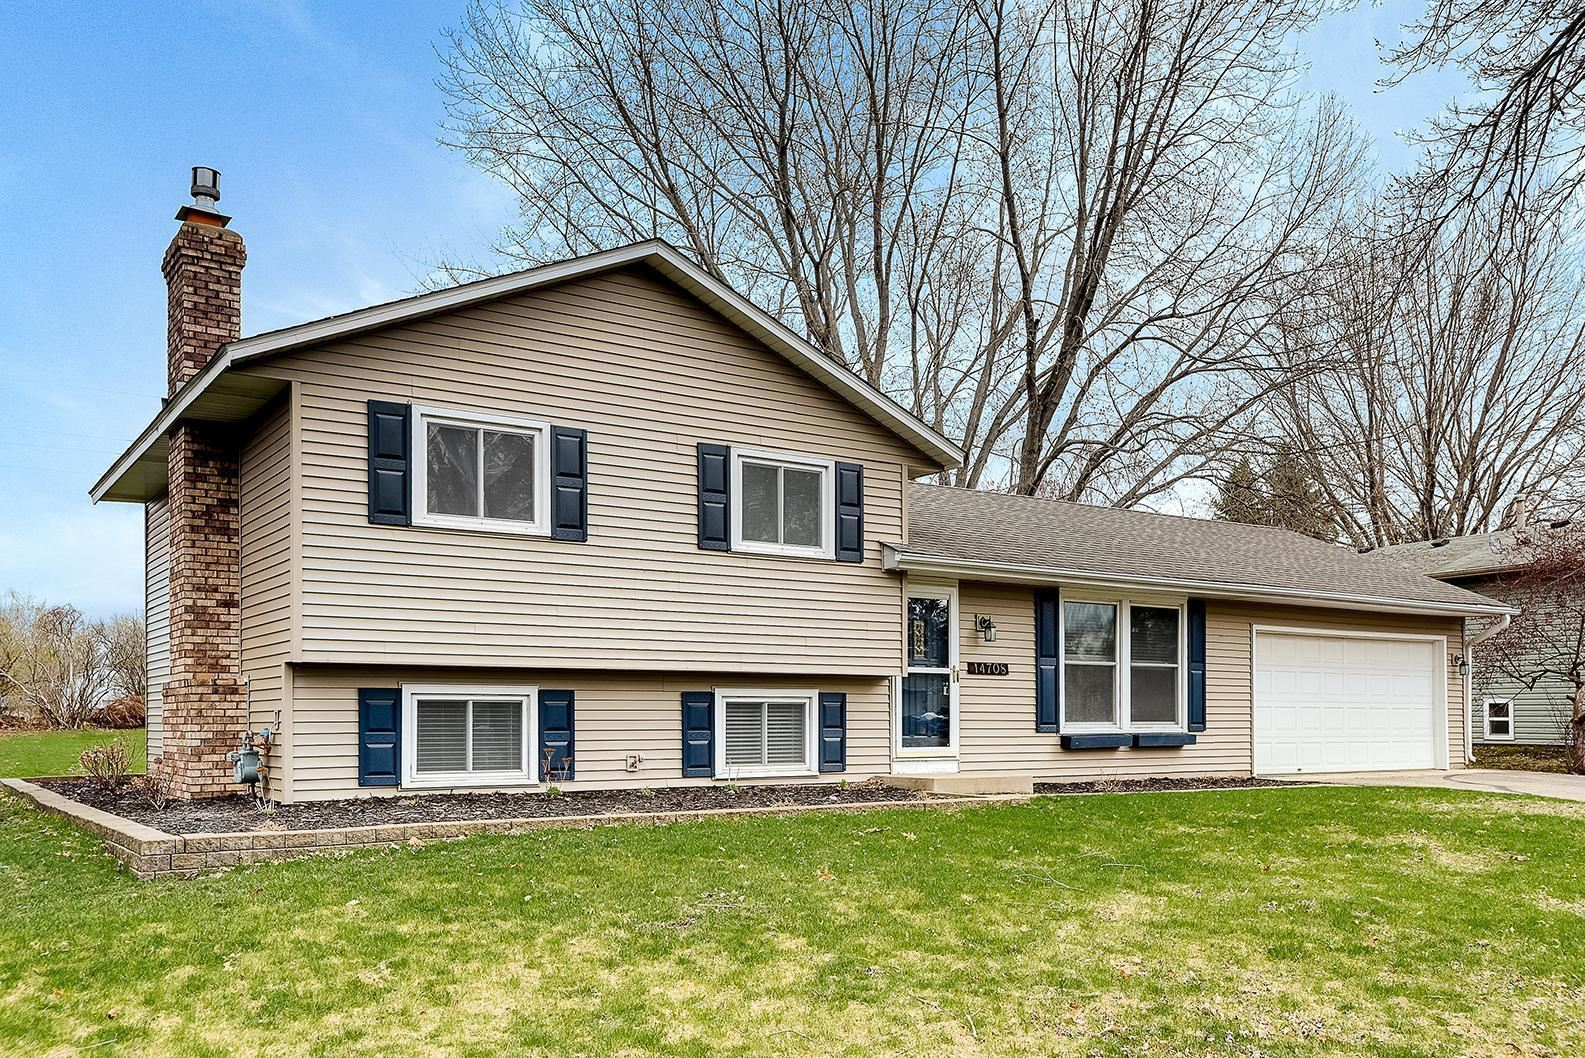 Photo of 14708 Denmark Court, Apple Valley, MN 55124 (MLS # 5741364)